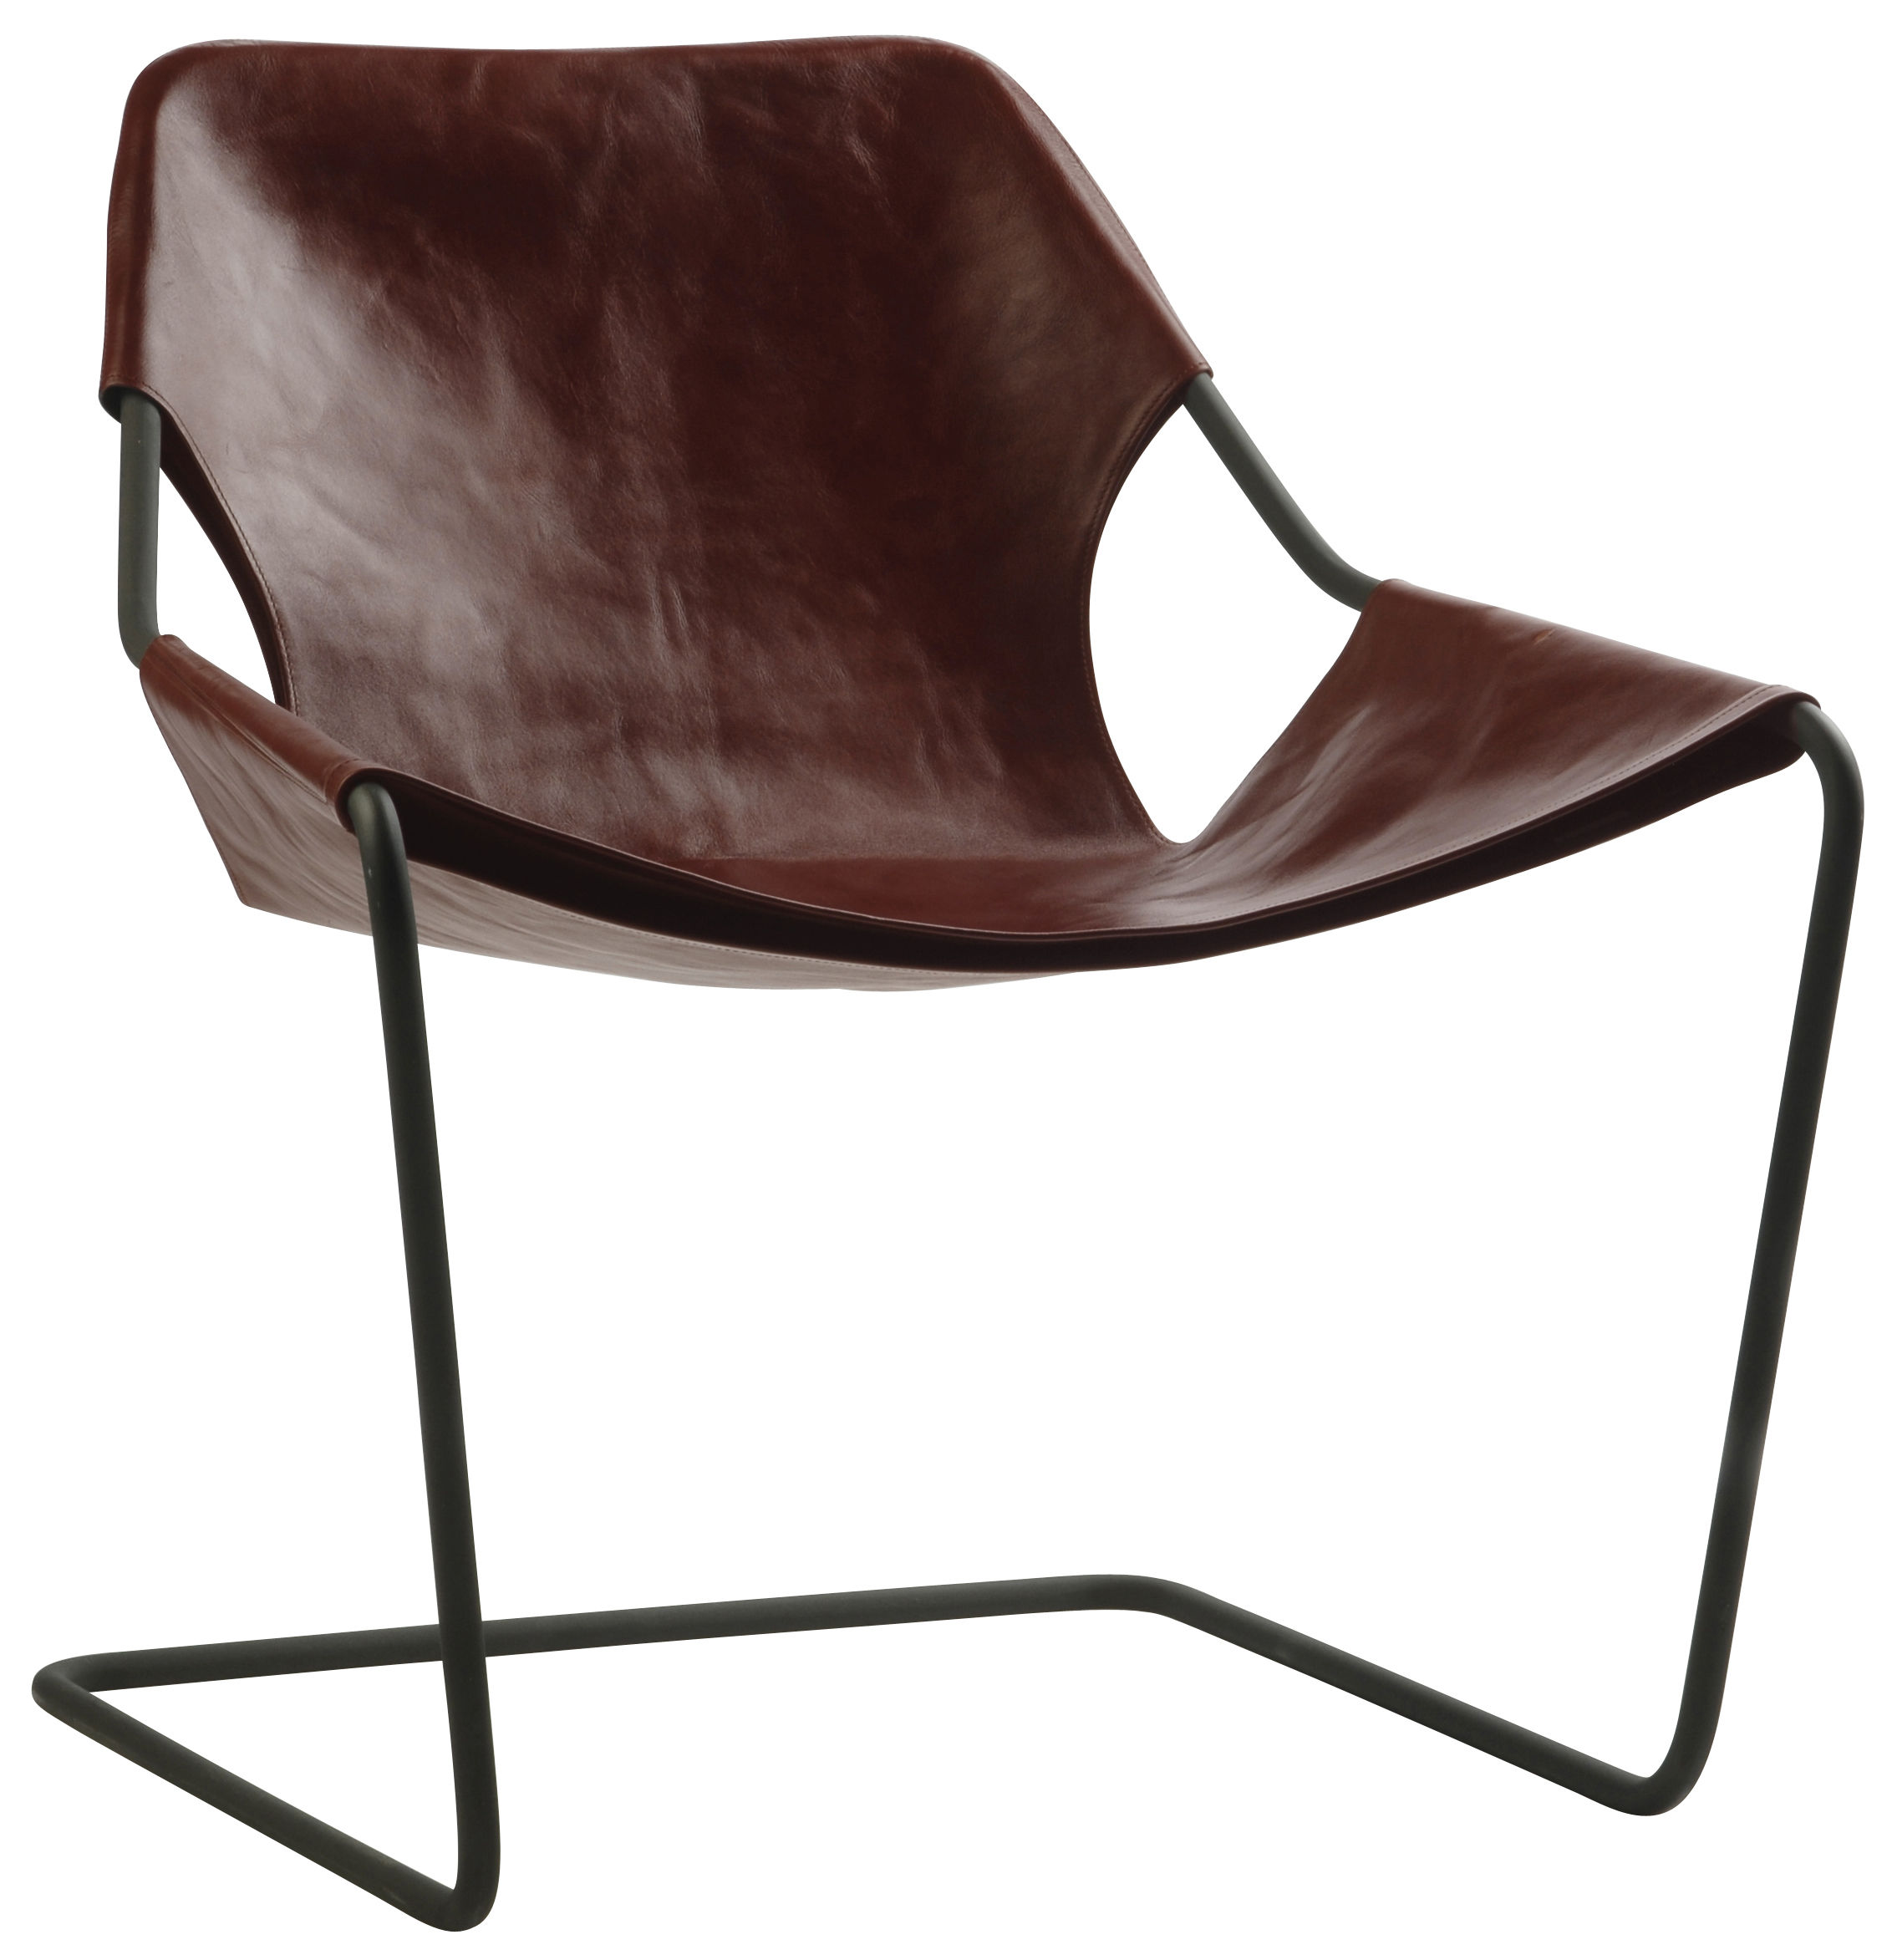 Furniture - Armchairs - Paulistano Armchair - Carbon version by Objekto - Cognac - Leather, Phosphated carbon